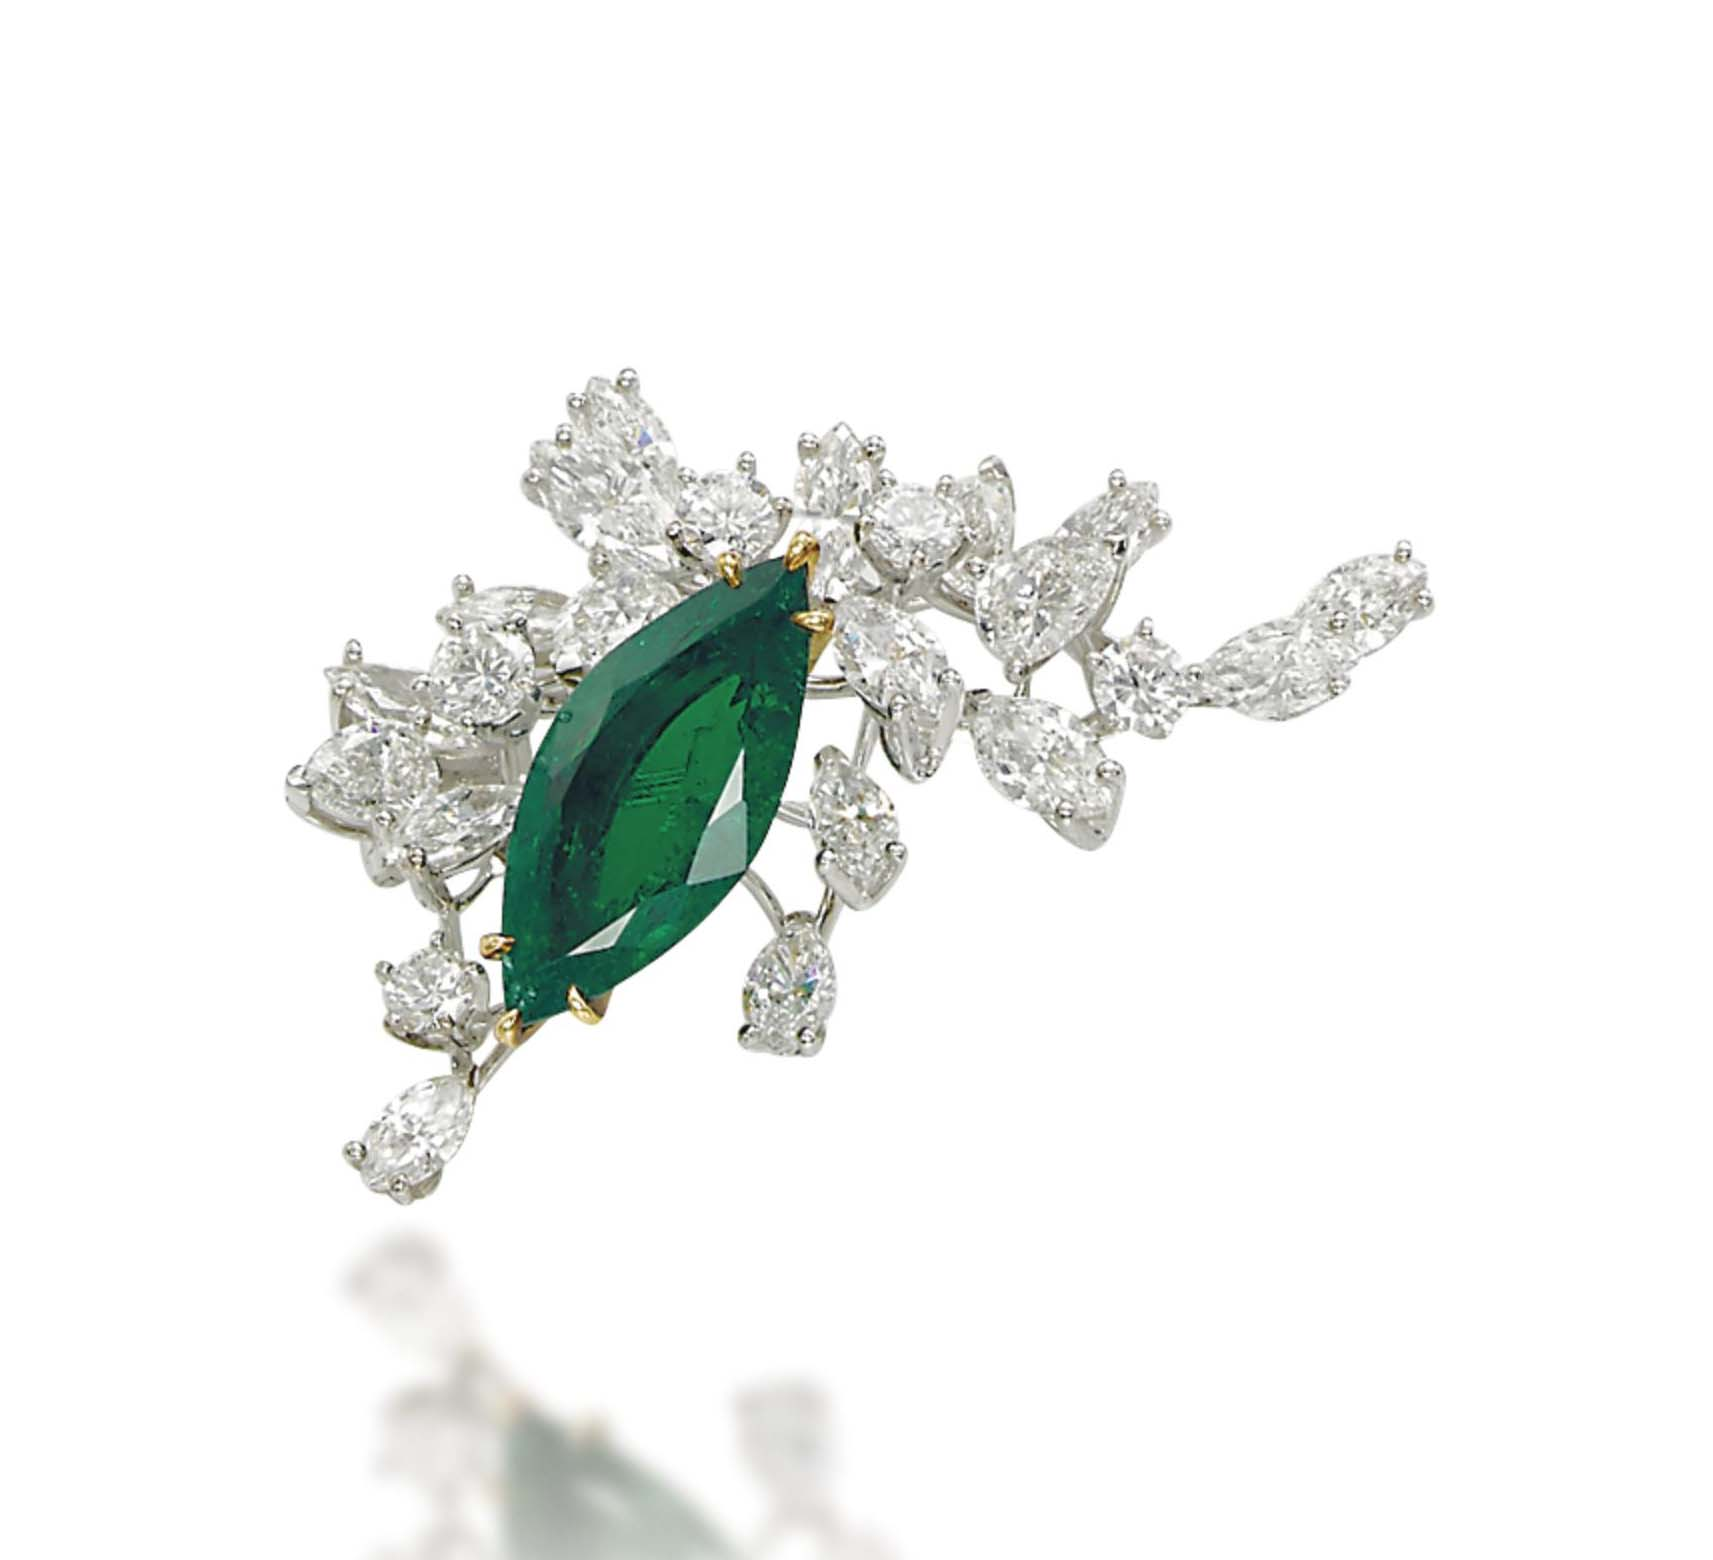 AN EMERALD AND DIAMOND BROOCH, BY MEISTER